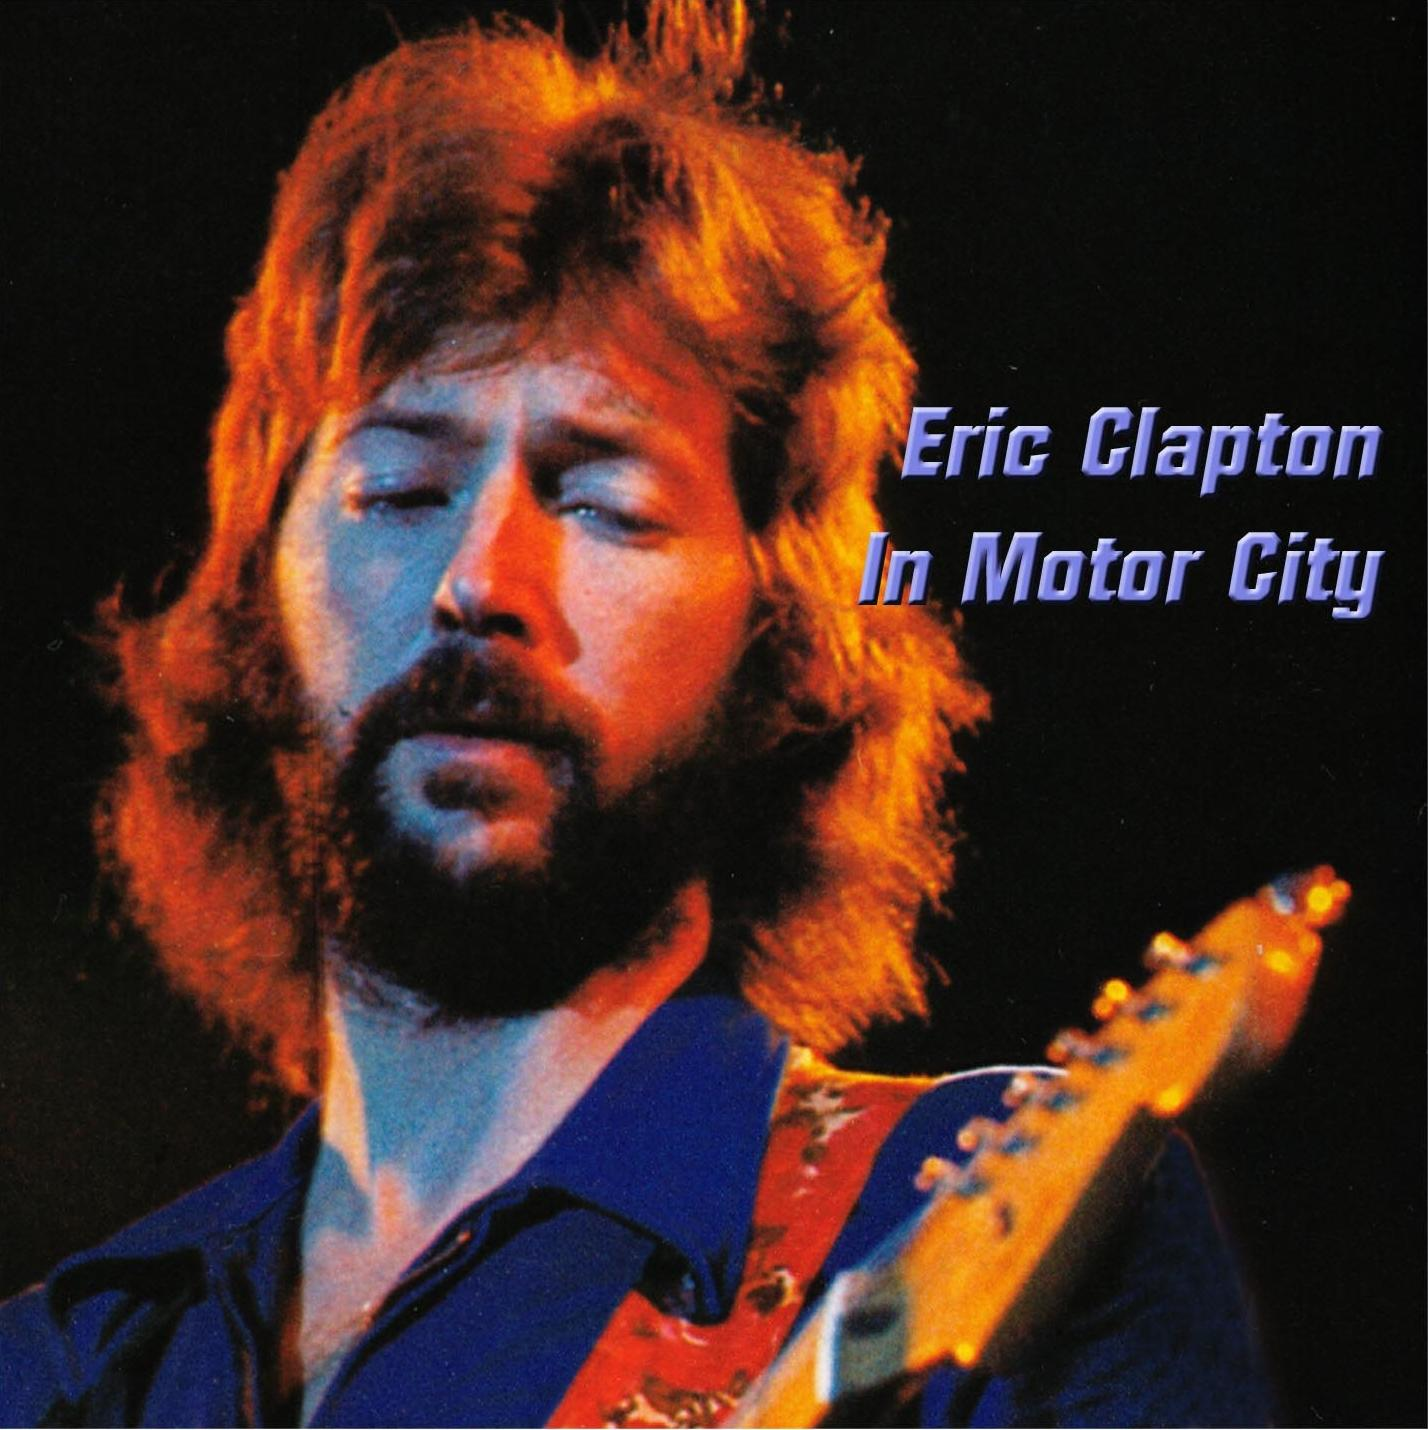 Eric Clapton in Motor City - Detroit, Michigan - July 1, 1975